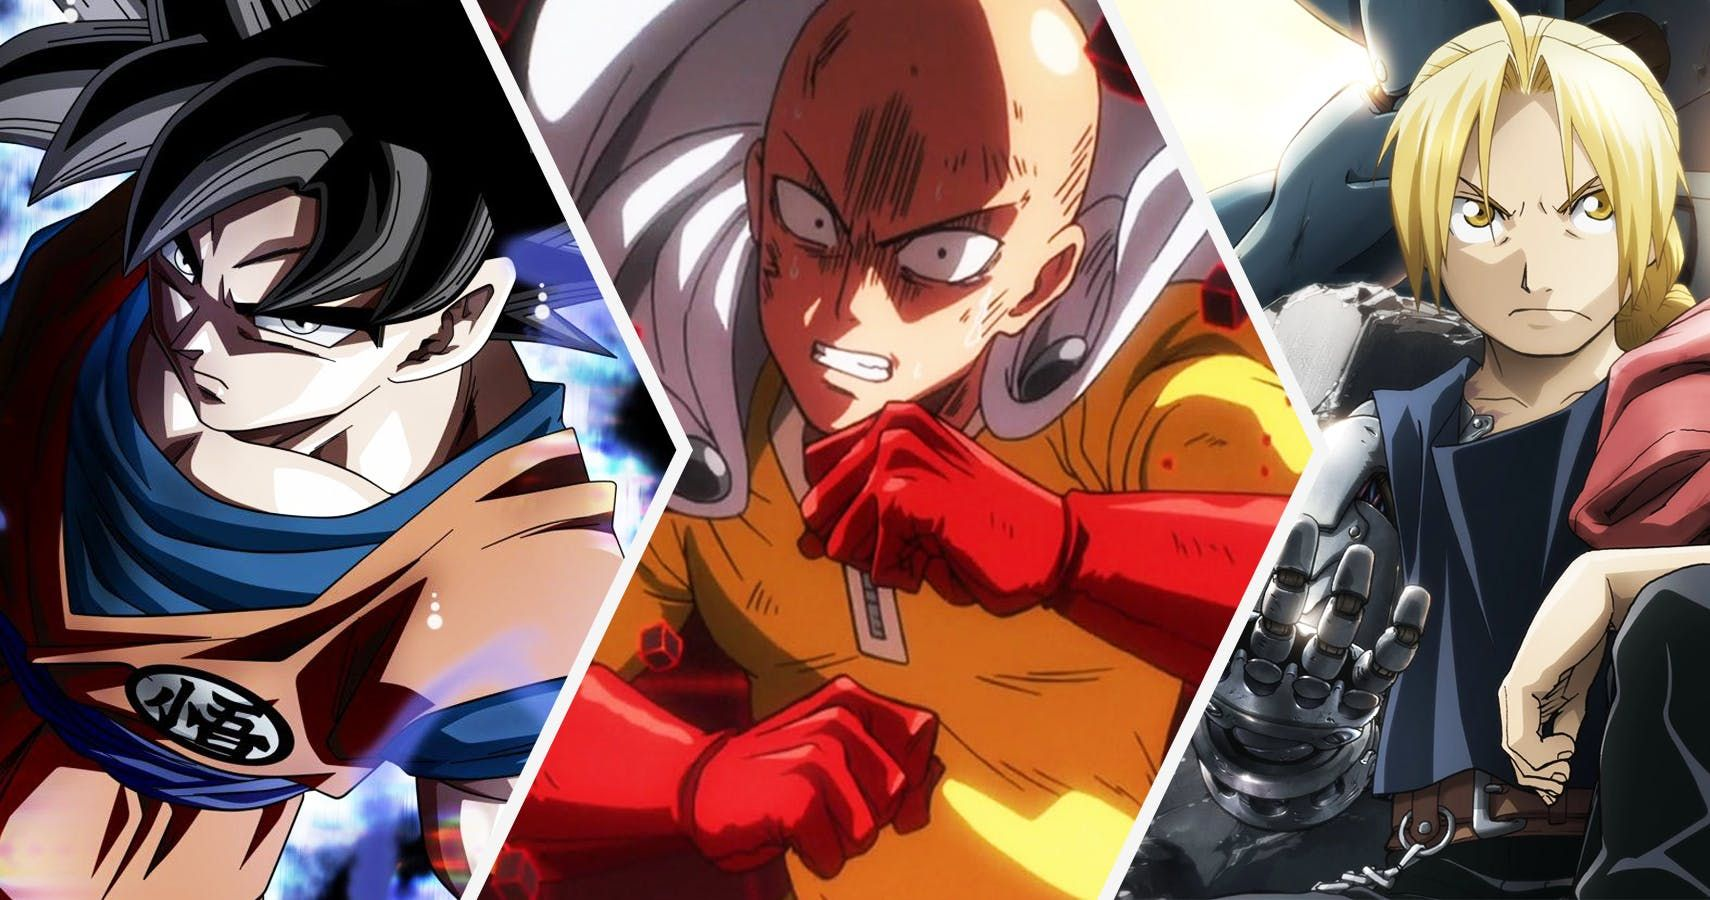 Top 25 Most Powerful Anime Characters Of AllTime, Ranked